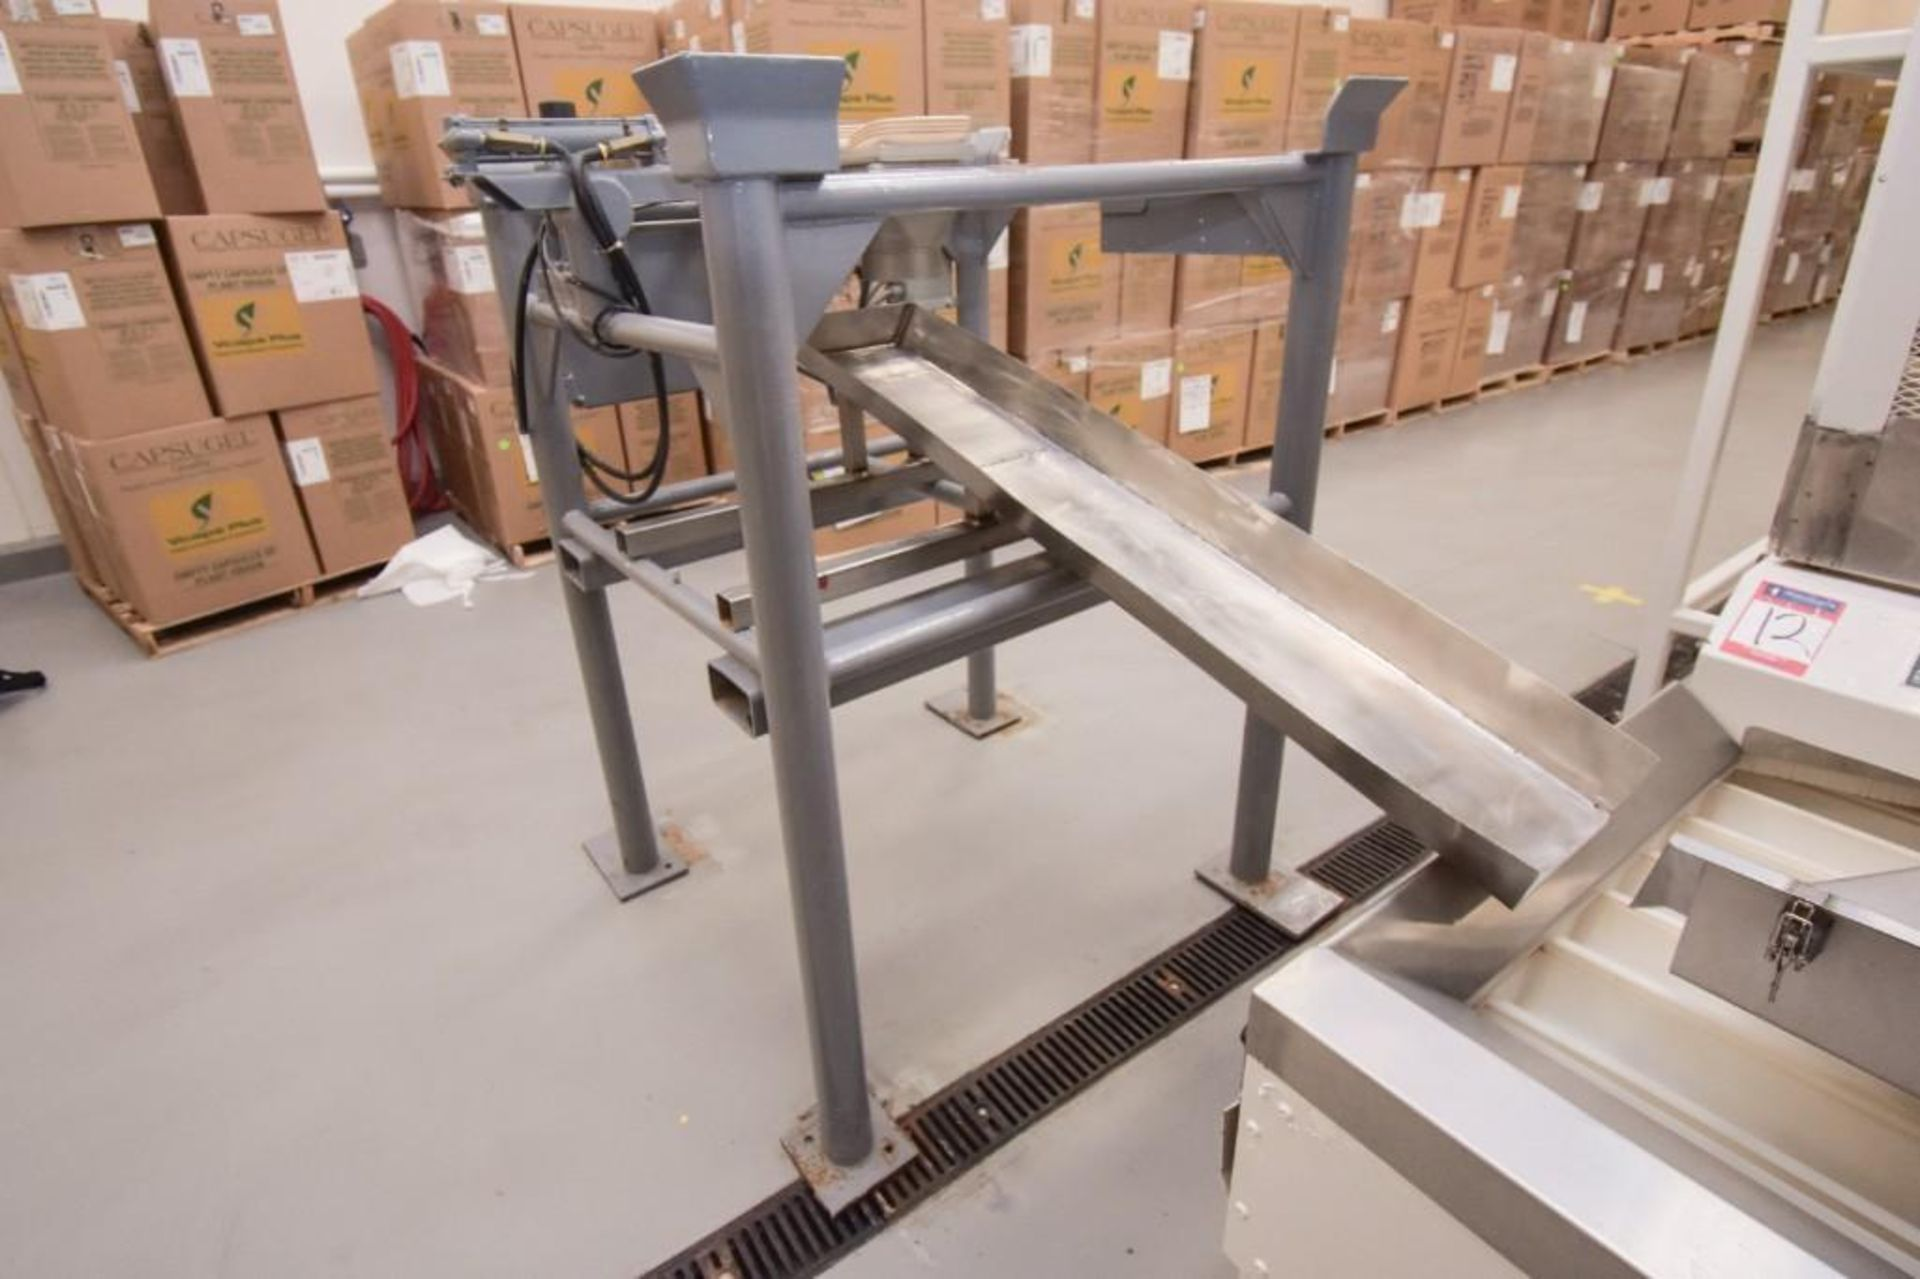 Vibratory Feeder For Totes - Image 4 of 7